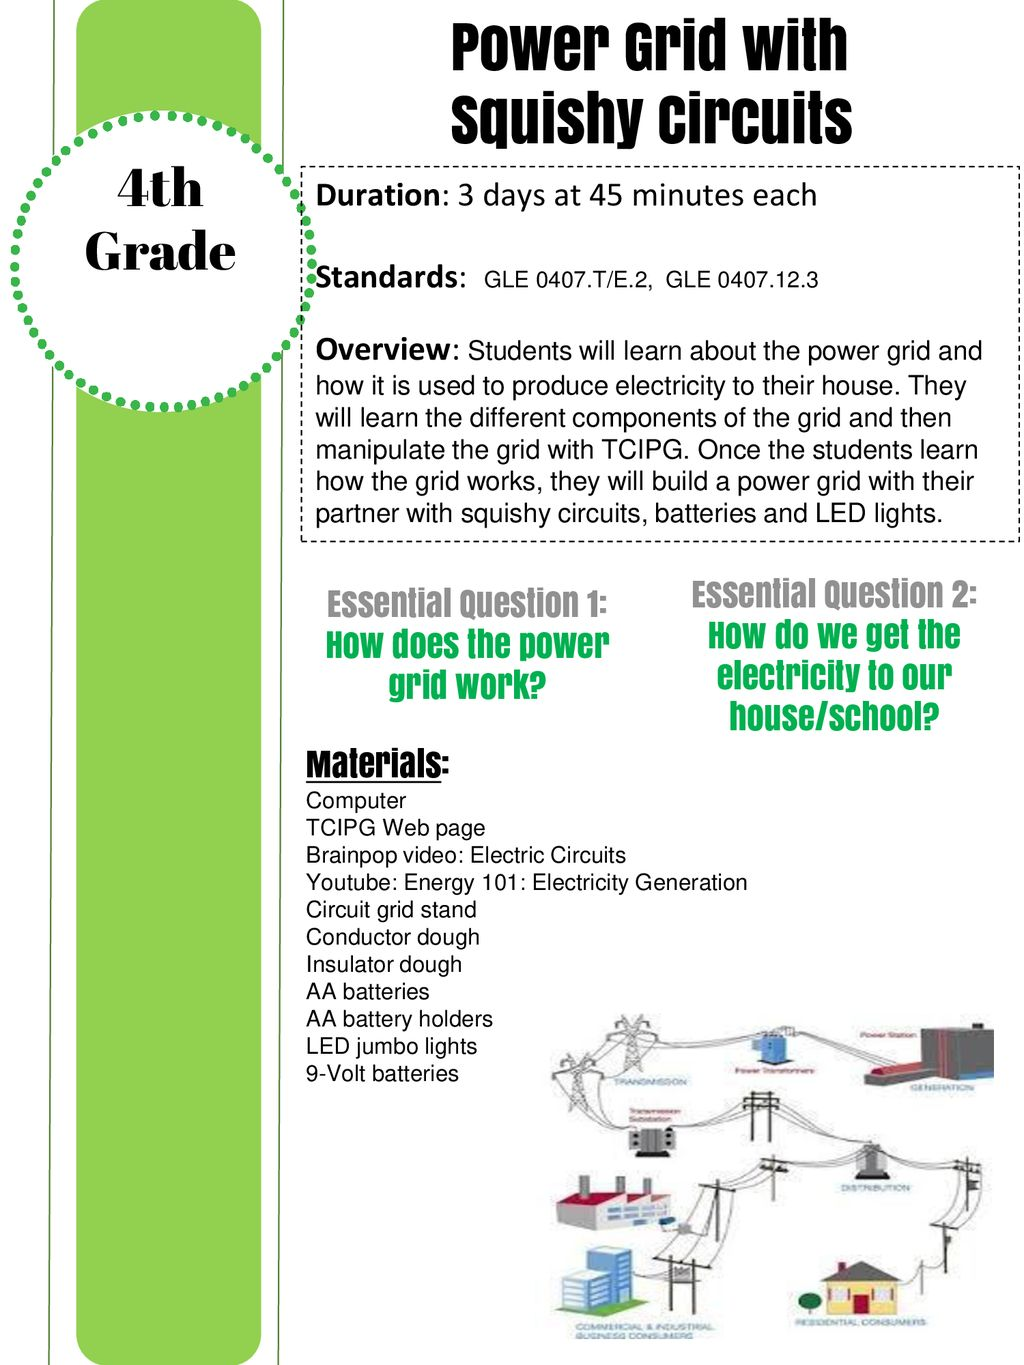 Essential Question 2 How Do We Use The Wind For Electricity Ppt To Make Squishy Circuits And Batteries Dough 1 Does Power Grid Work